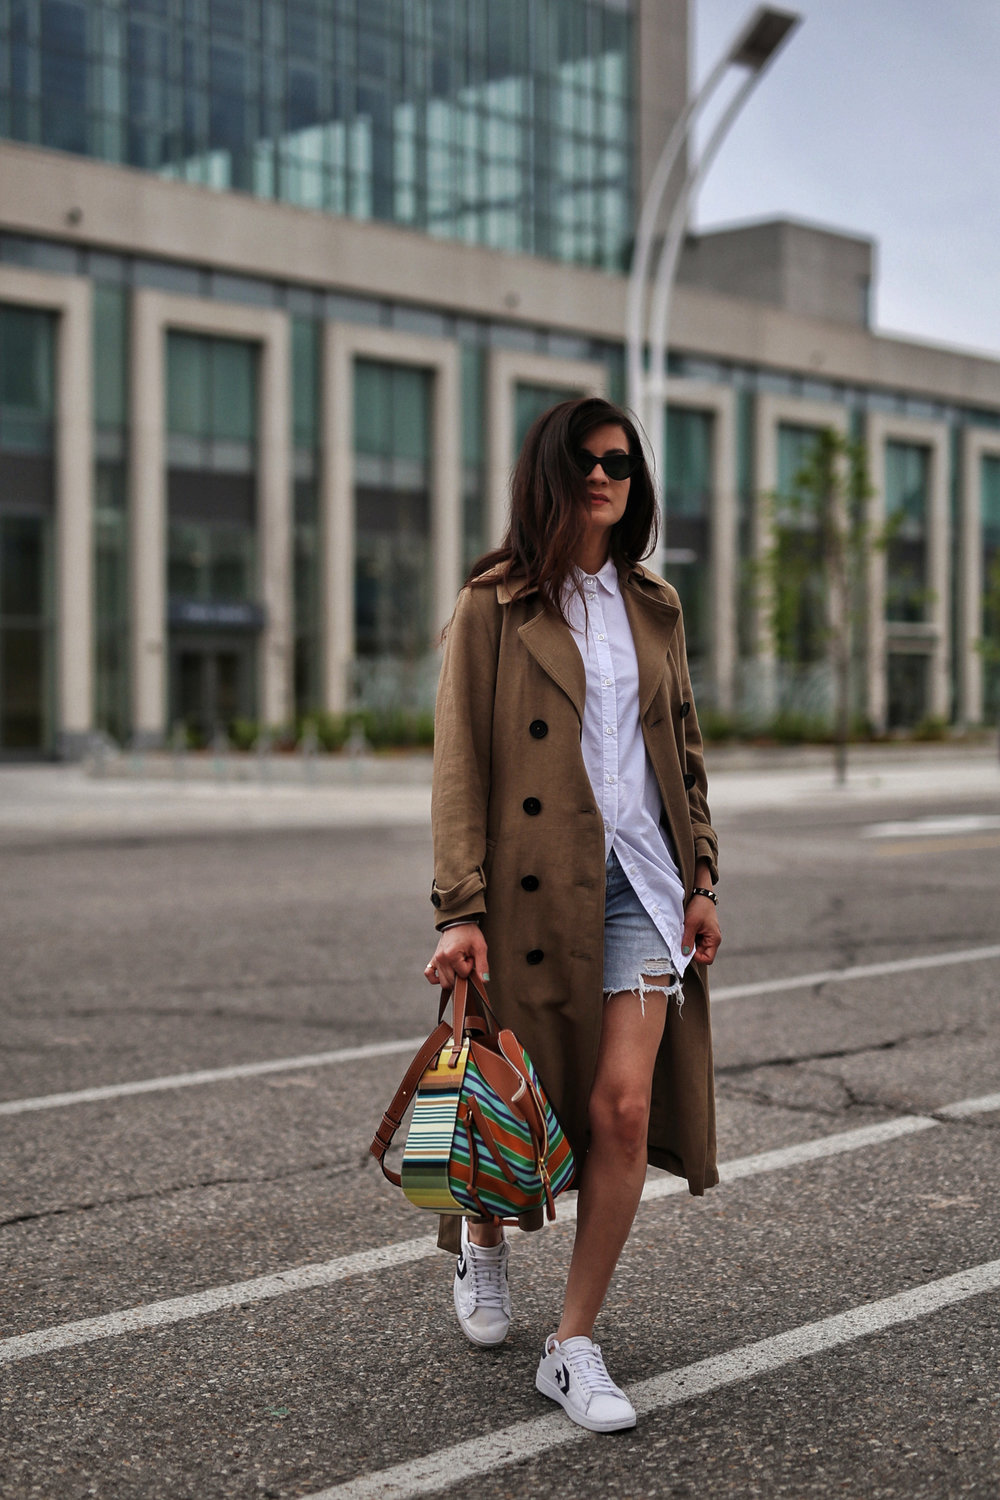 woahstyle.com 2018 - zara linen trench coat, free people cut off shorts, converse one stars, loewe striped small hammock bag, white button up shirt - toronto street style - hotel x - nathalie martin 11.jpg